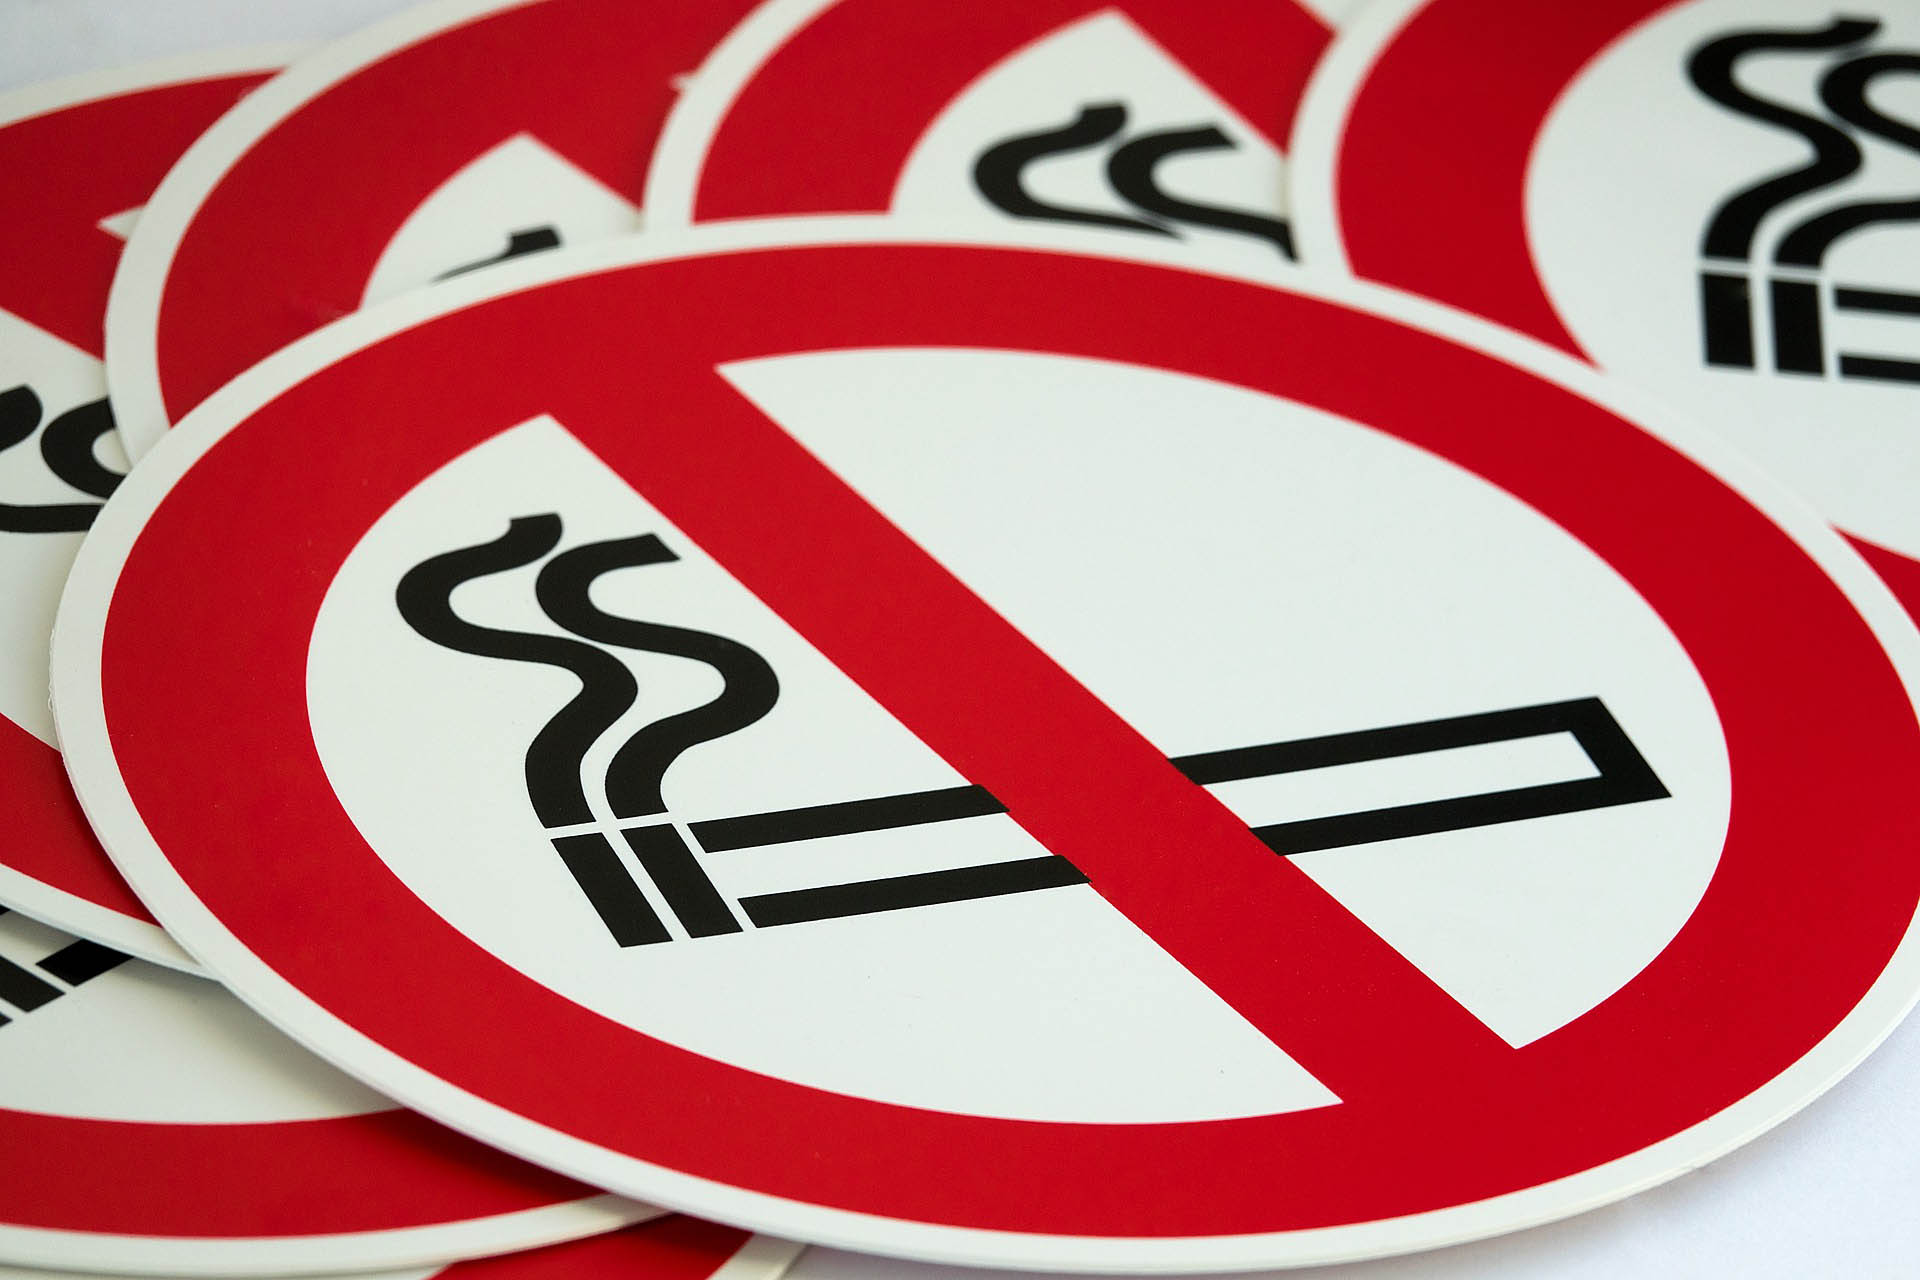 Link to the page about smokefree workplaces